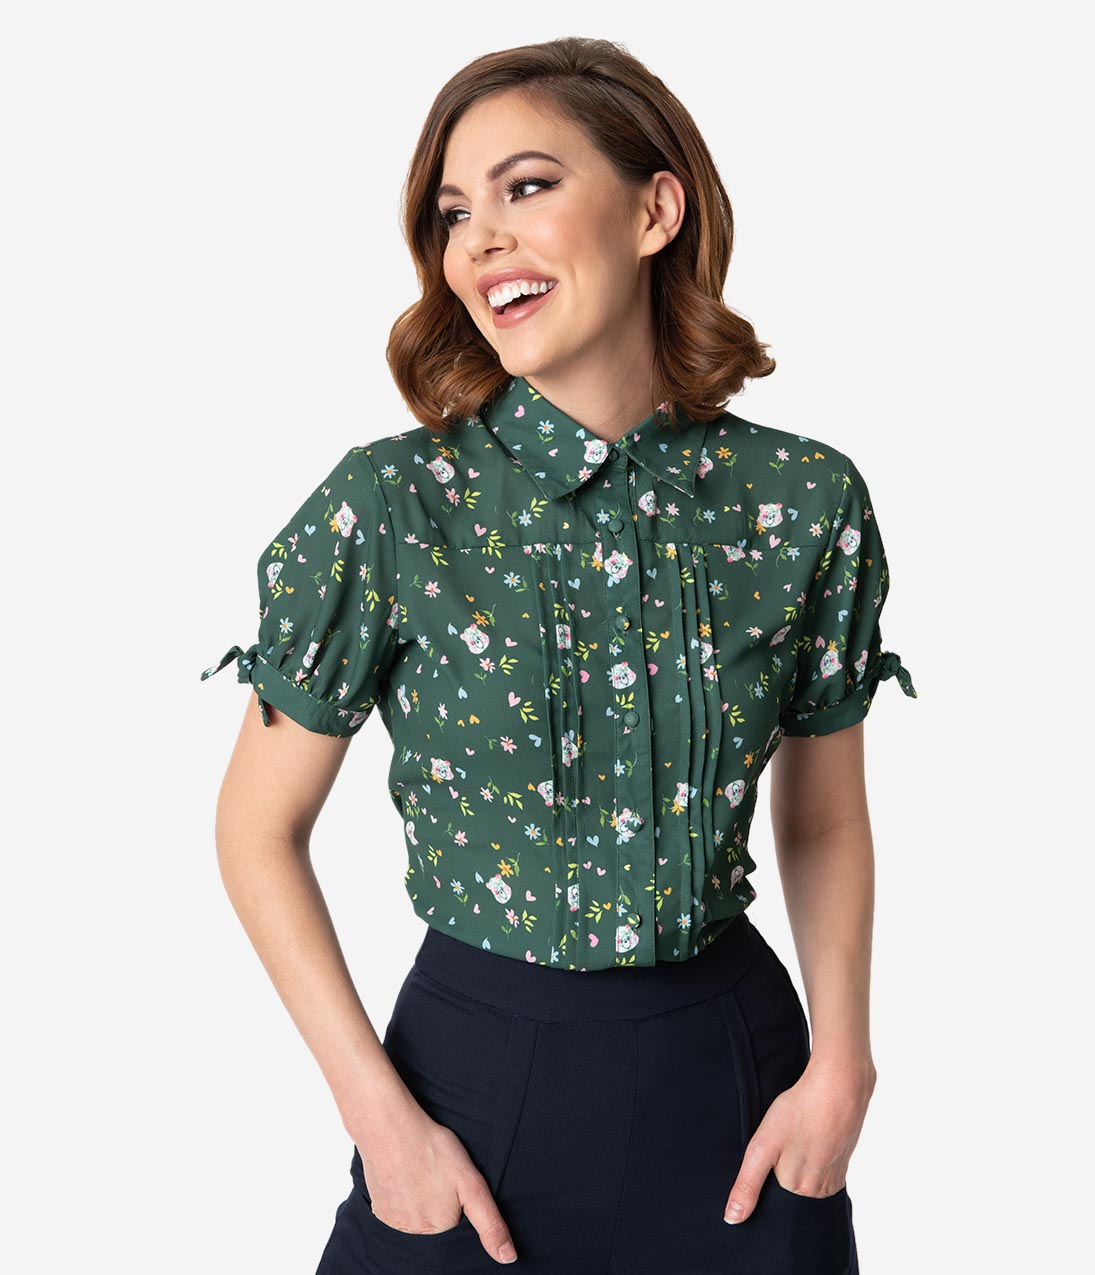 f30fcf405ee Care Bears x Unique Vintage Emerald Green Care Bear Print Colvin Blouse